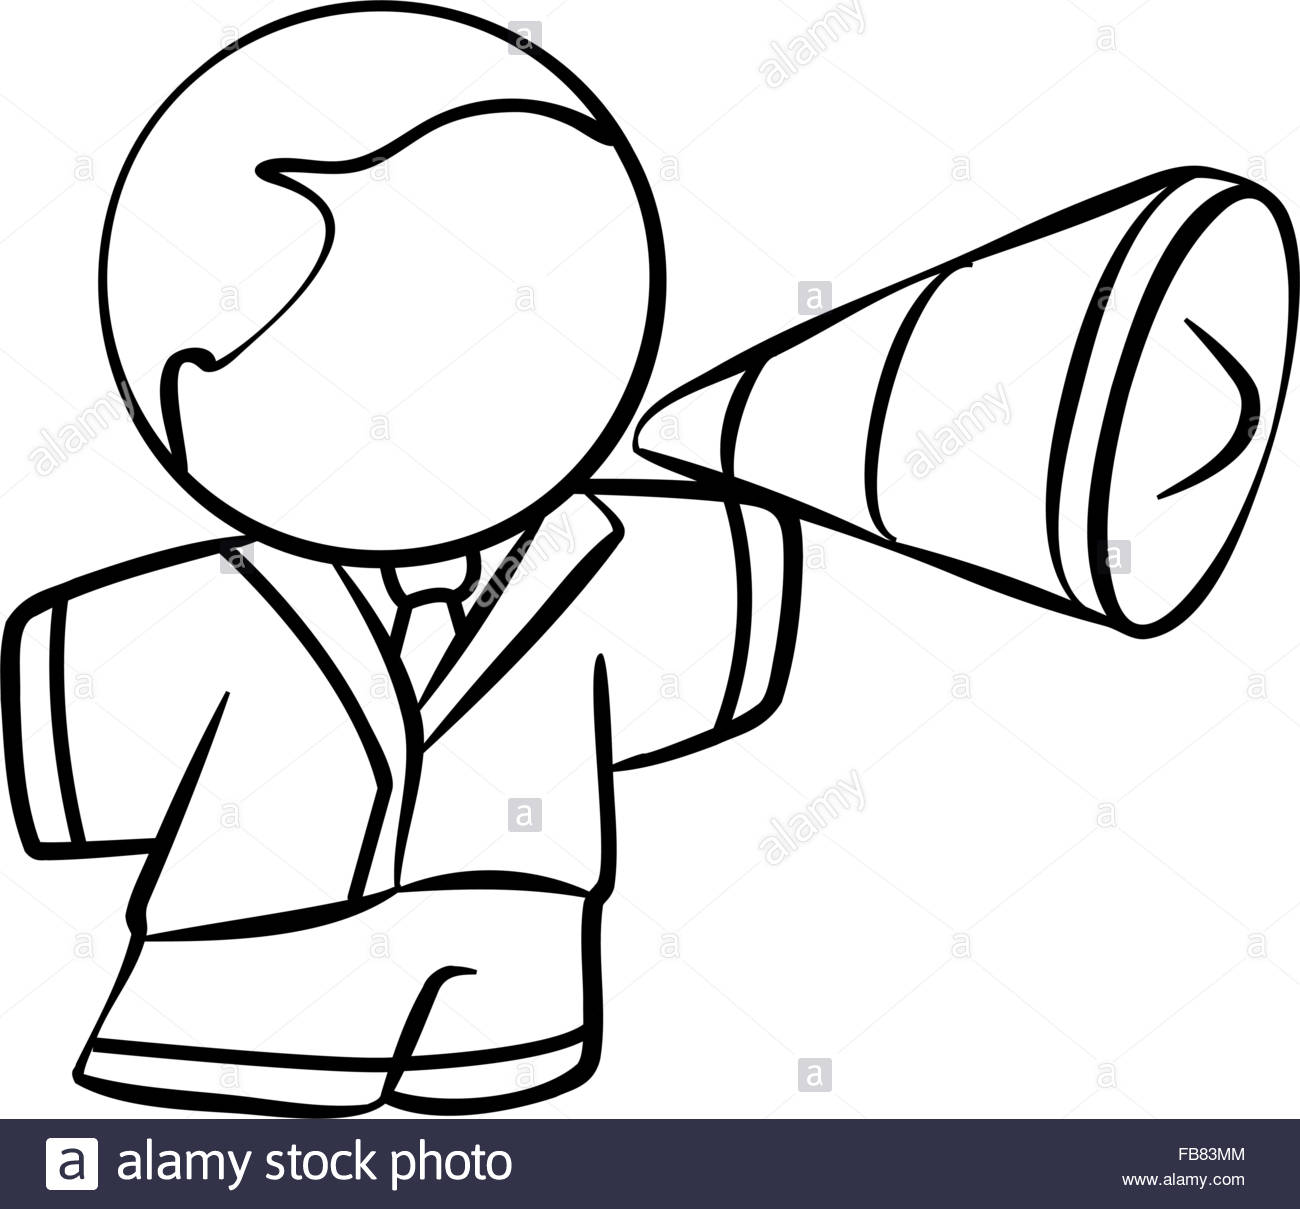 1300x1209 Line Drawing Of A Business Man With A Megaphone Stock Vector Art